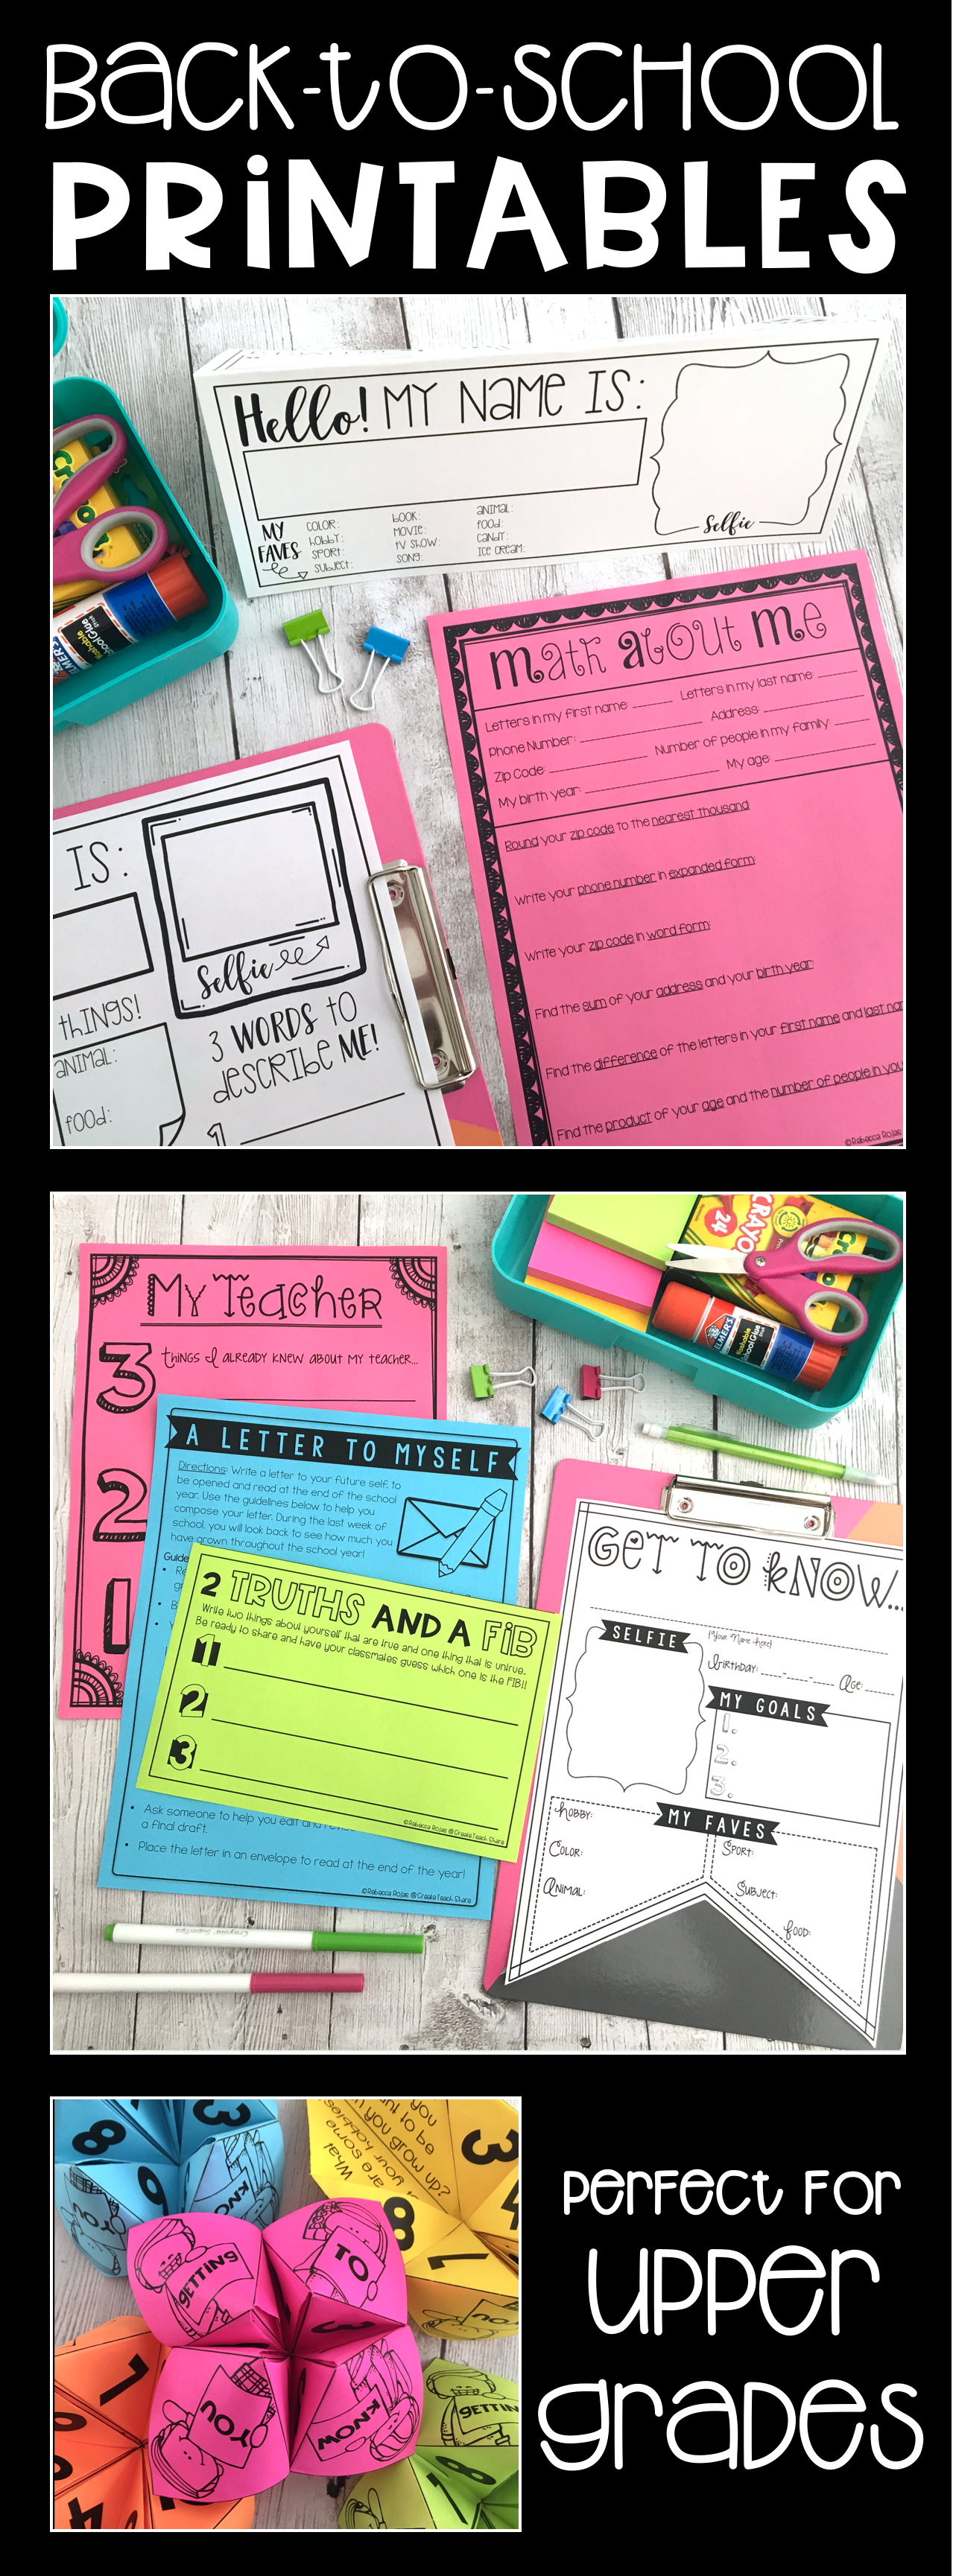 Classroom Games Ideas For College Students : Back to school activities routine teacher and